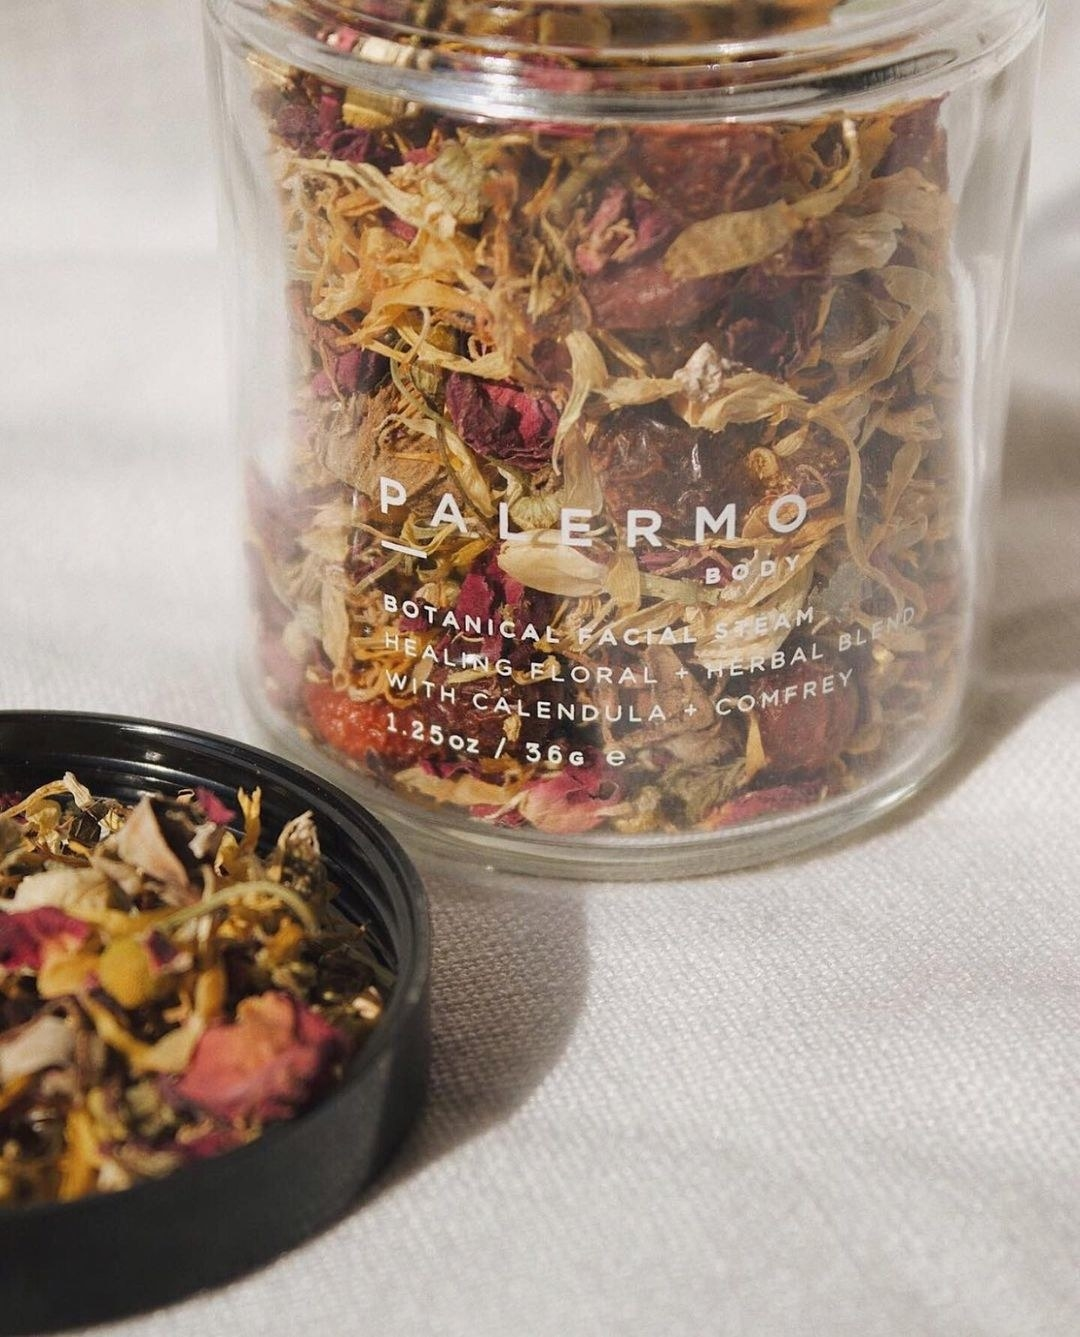 A close-up of the botanicals inside the jar